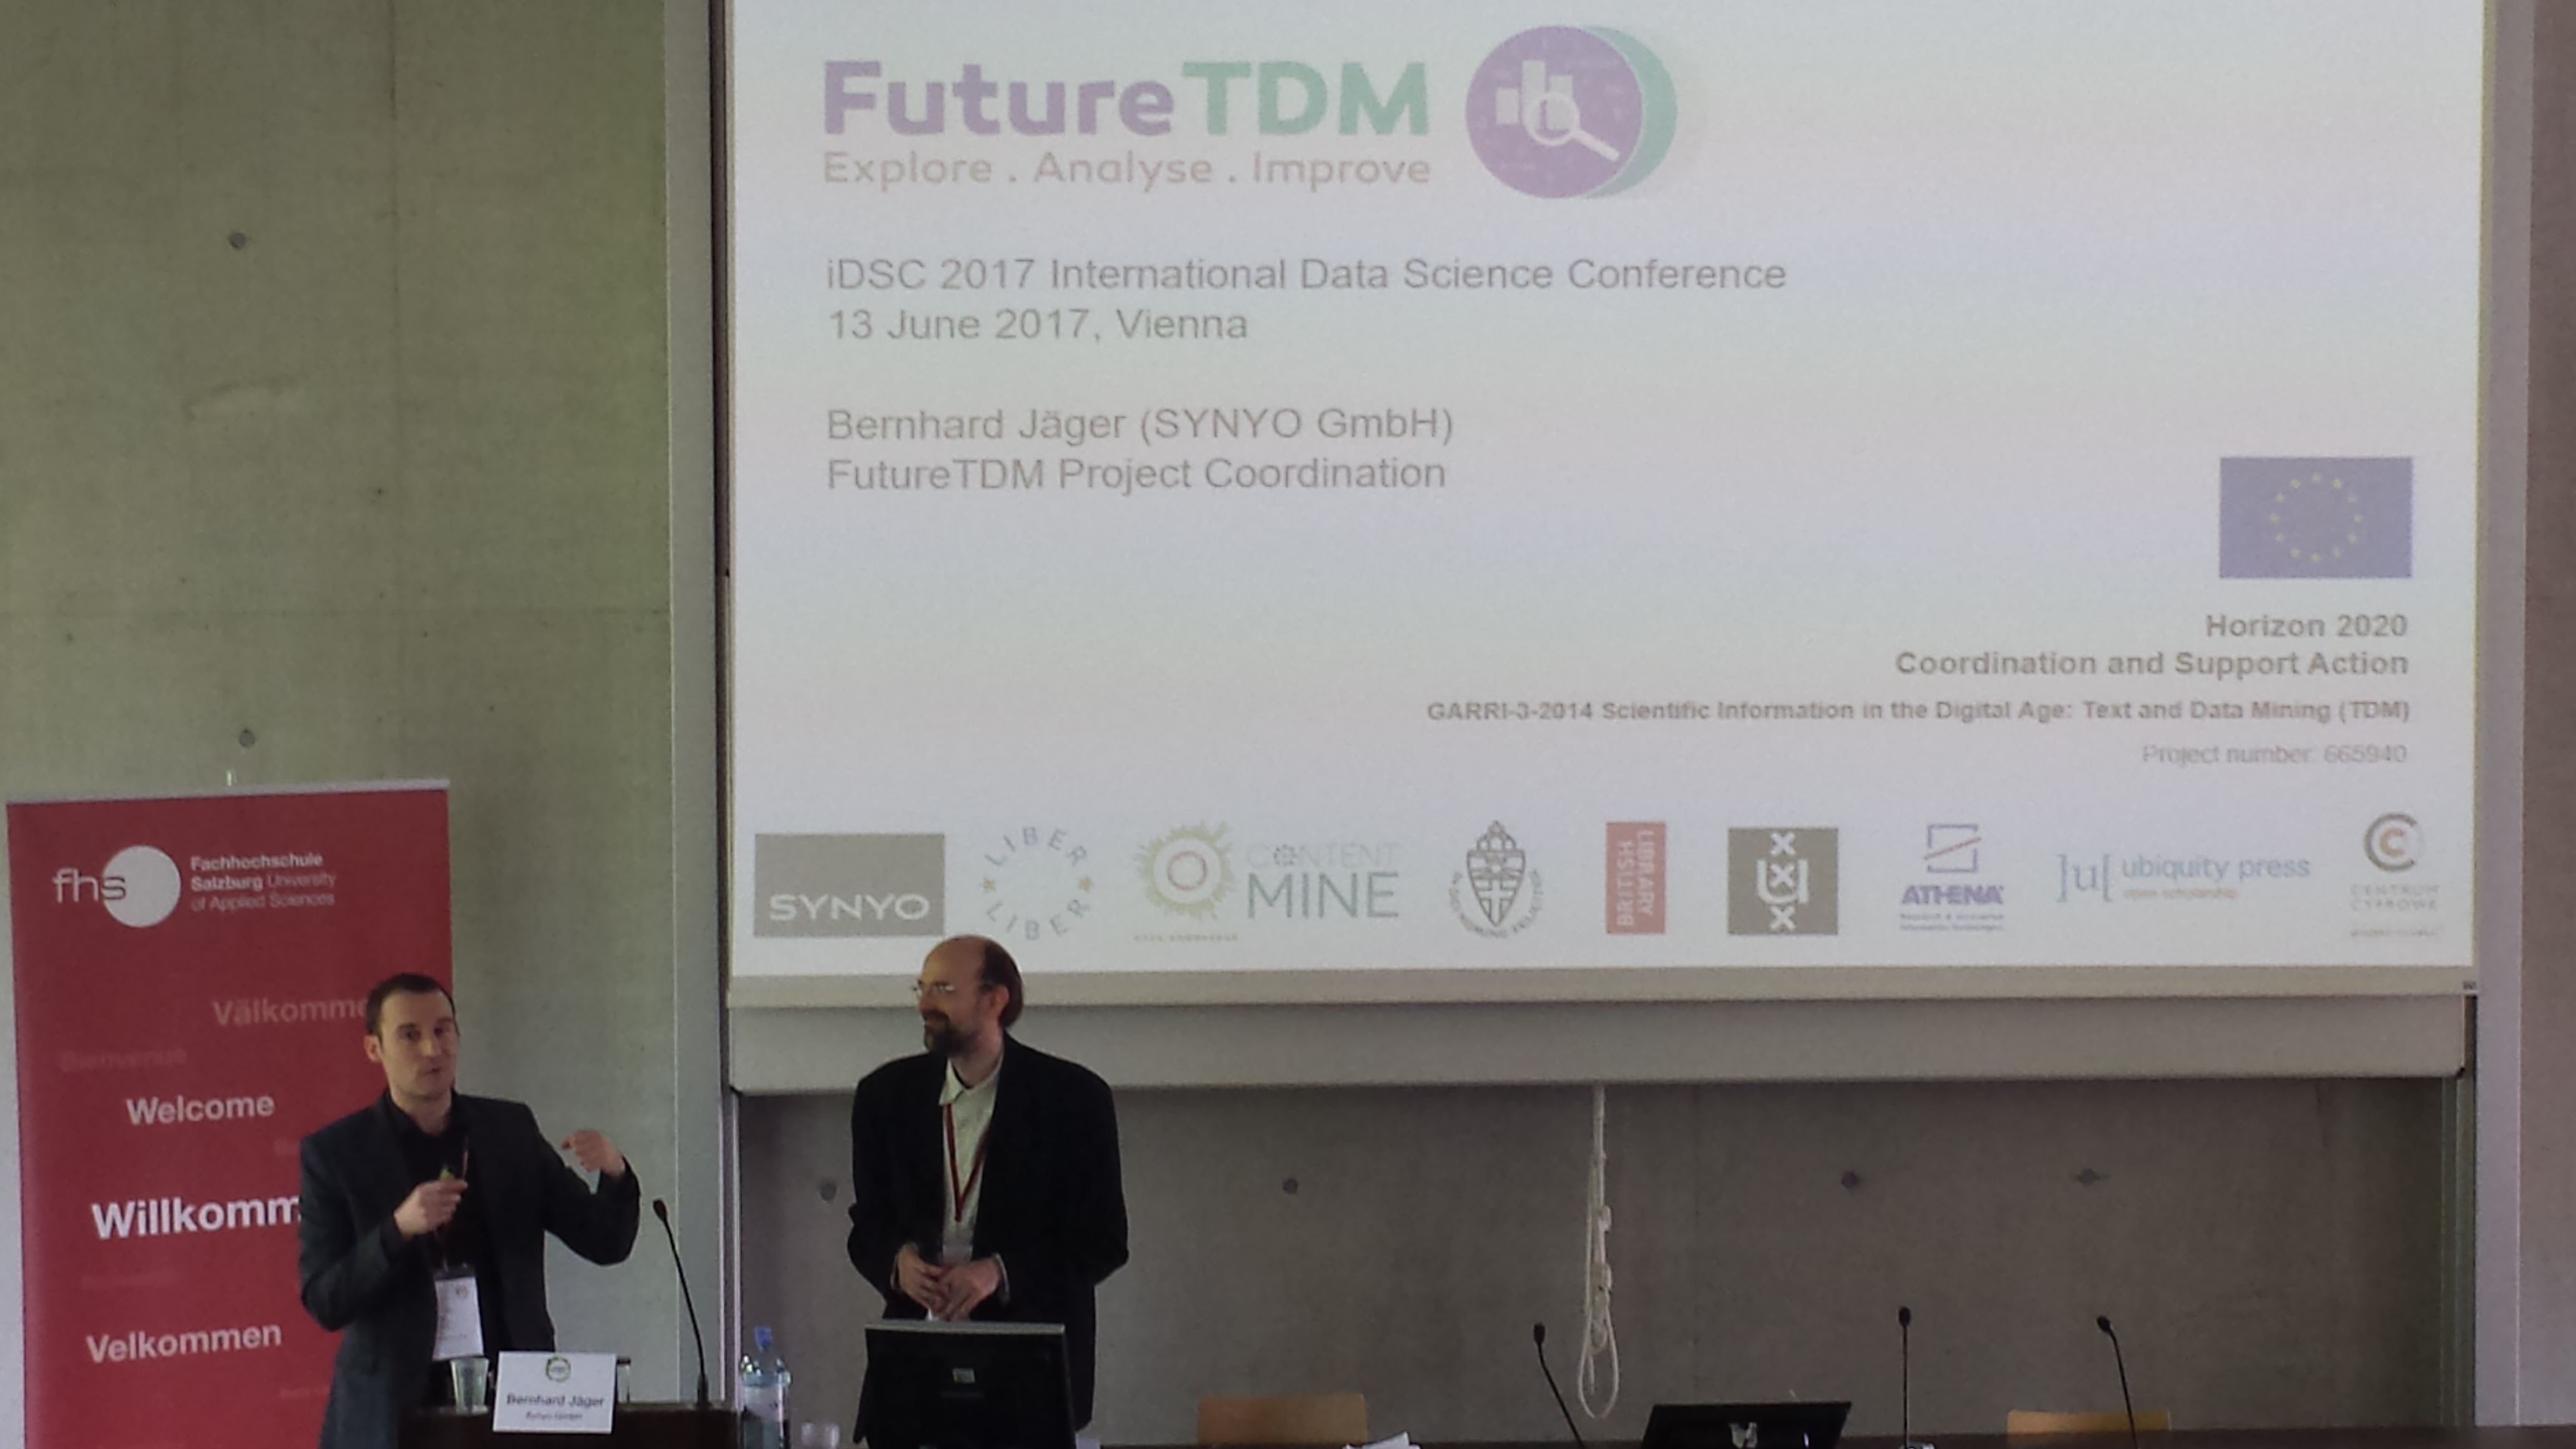 Keynote speech of Bernhard Jaeger, giving an introduction of FutureTDM Project